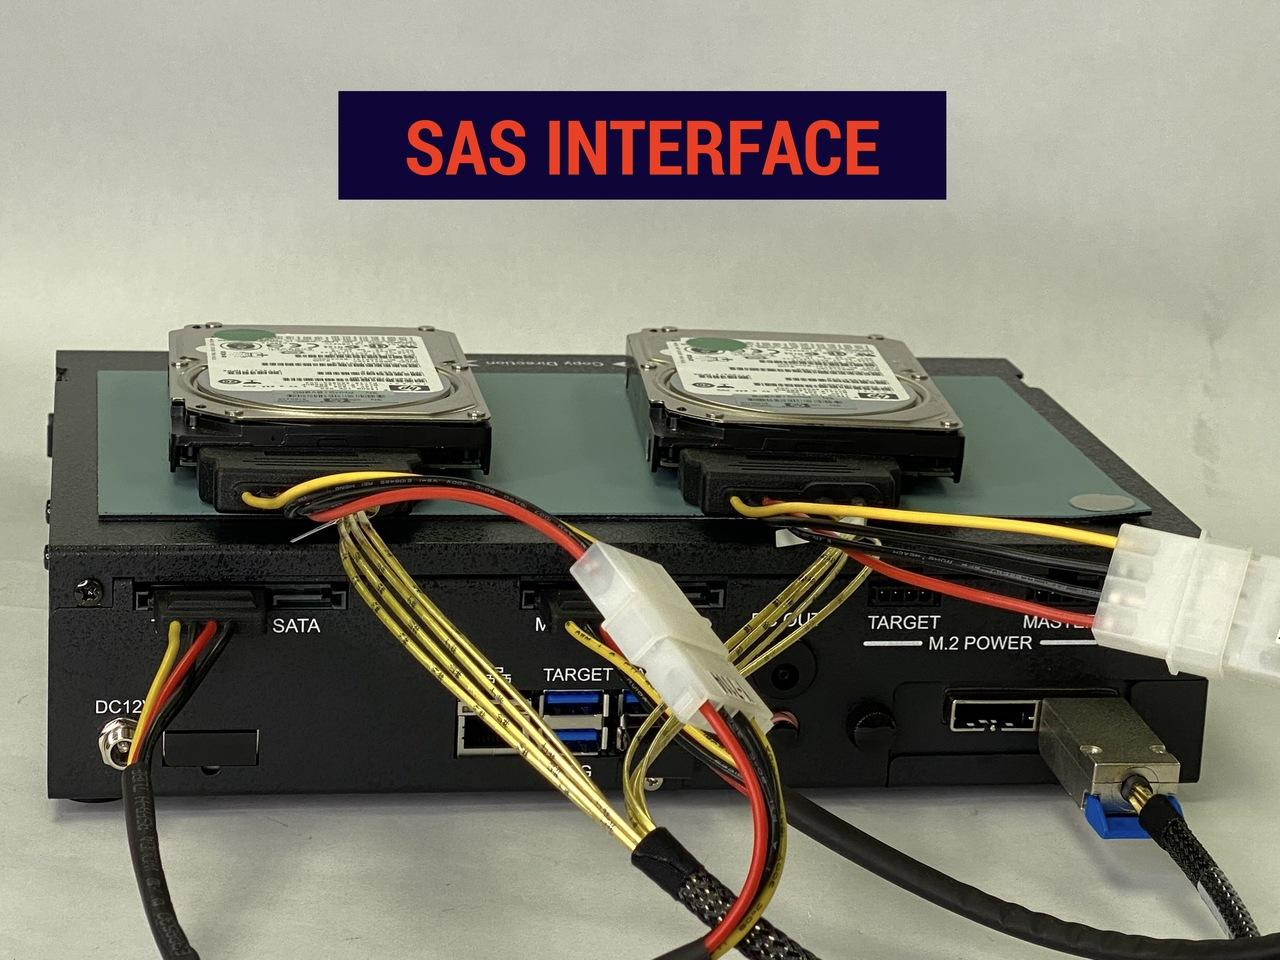 FX2260 with SAS Interface ports at the rear